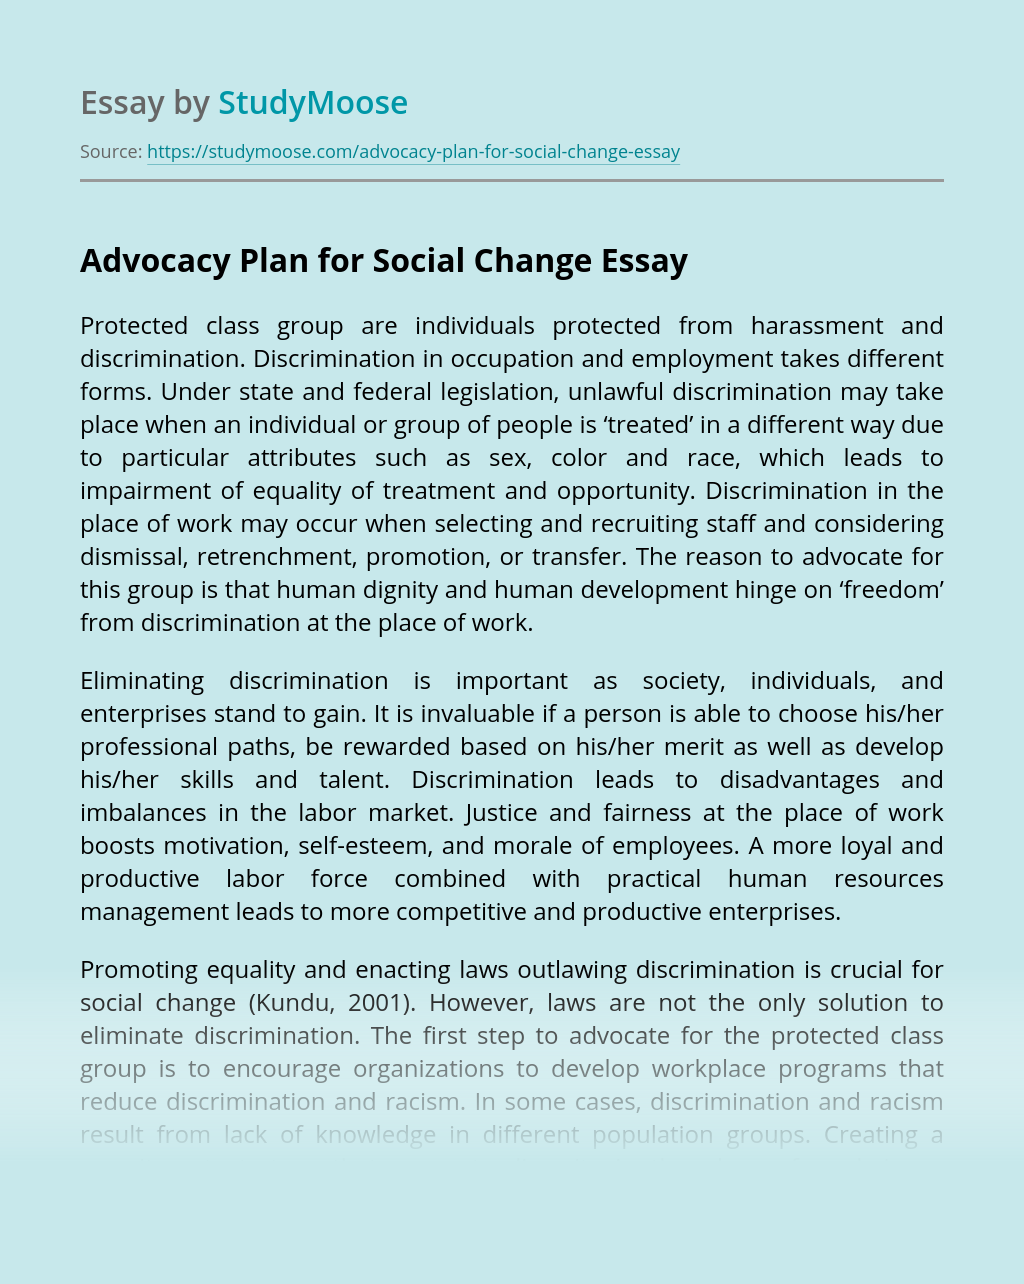 Advocacy Plan for Social Change